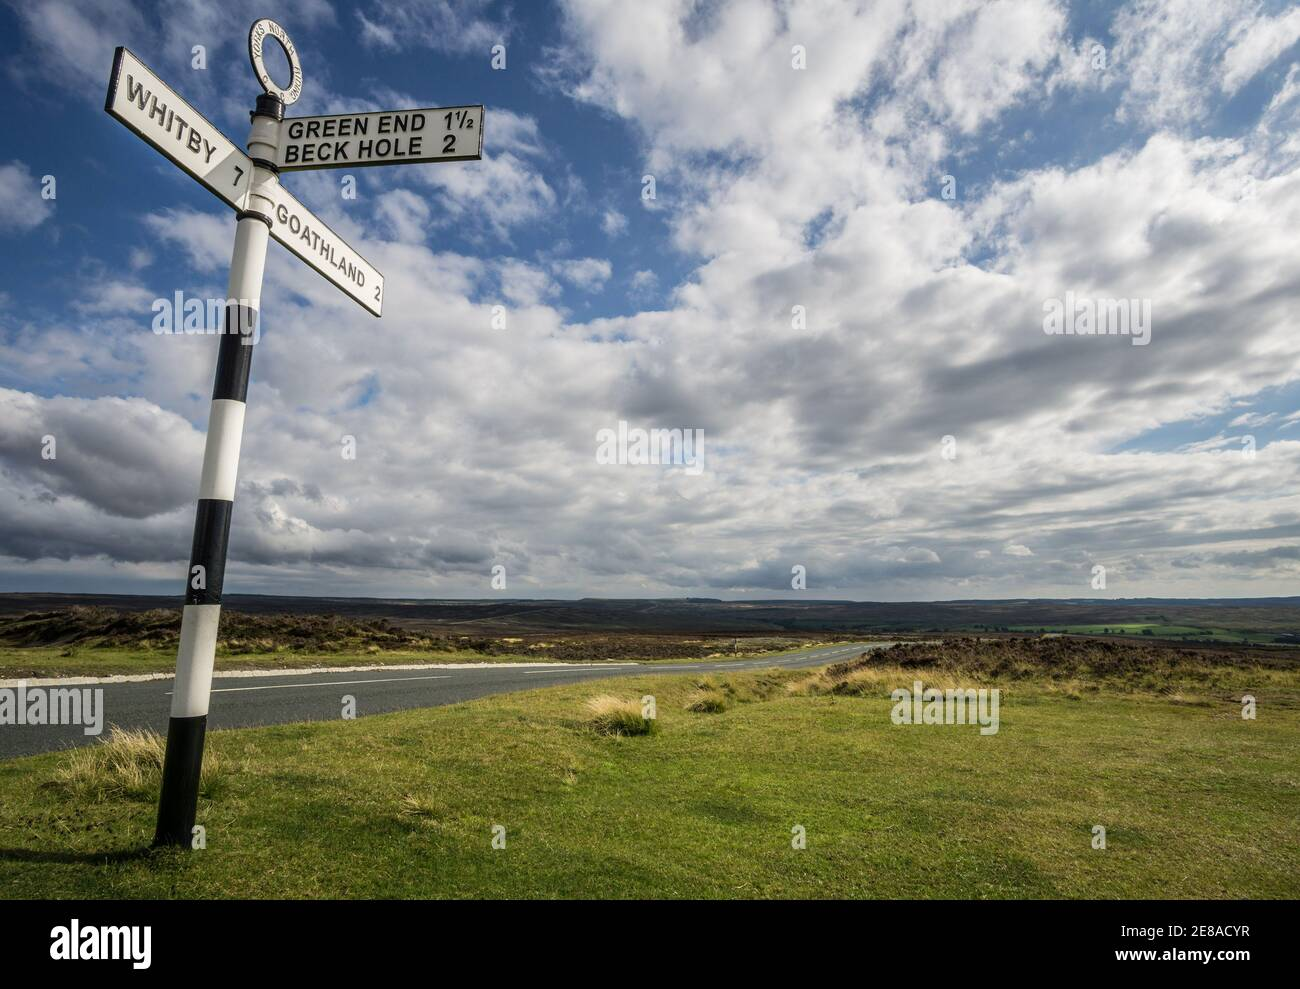 Old fashioned British road sign near Goathland in the North York Moors National Park, indicating the way to Green End, Beck Hole and Whitby Stock Photo